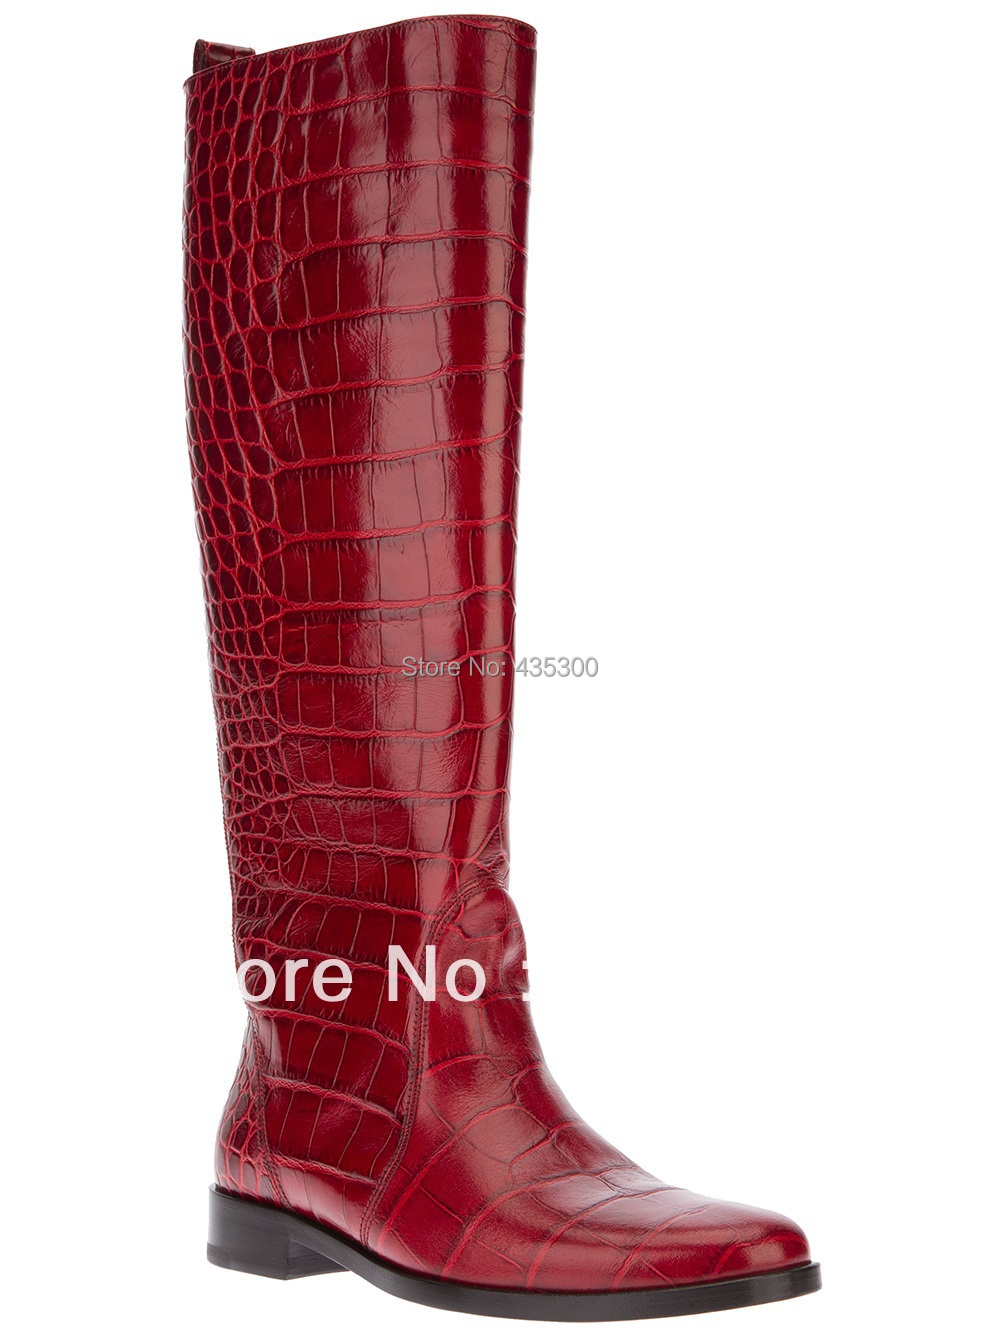 wholesale womens real leather red stone embossed faux